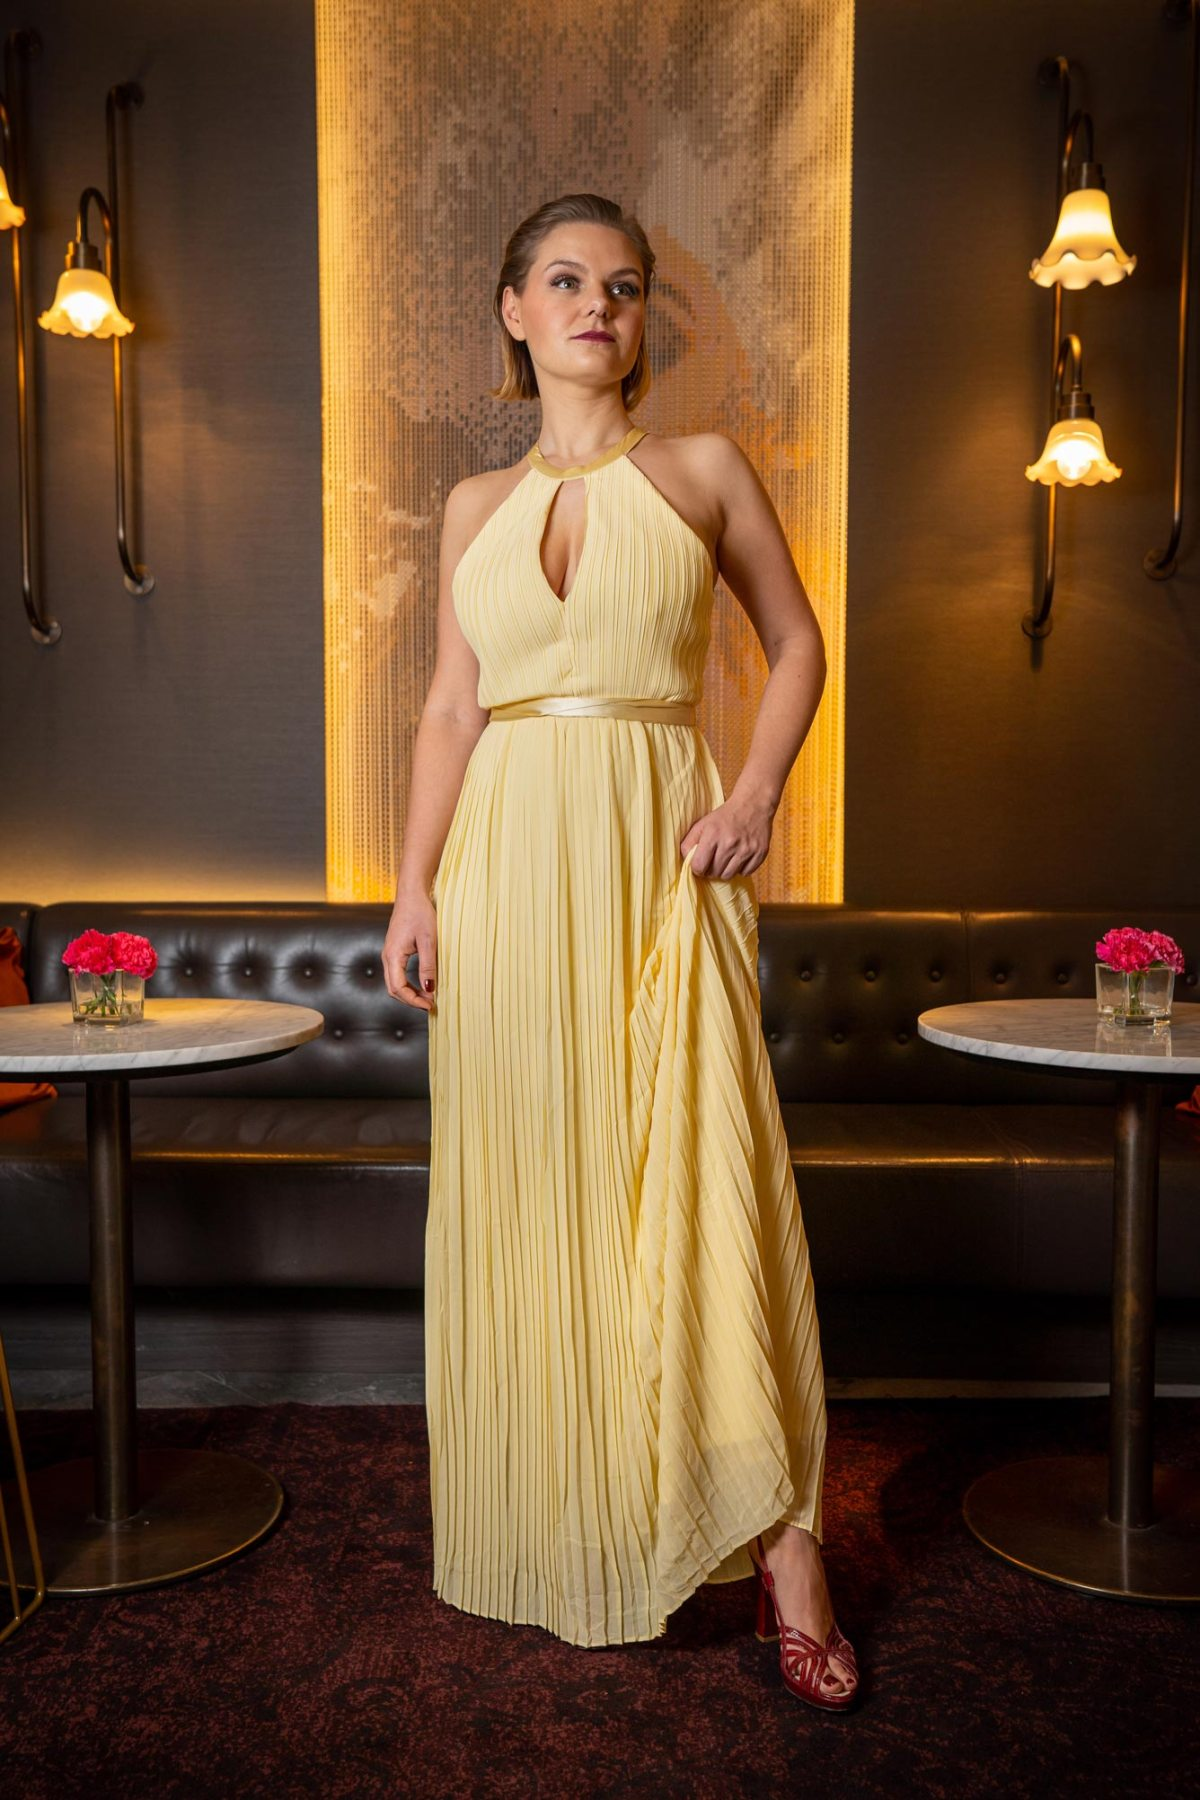 https://i0.wp.com/yellowgirl.at/wp-content/uploads/2019/02/yellowgirl-Ball-Outfit-gelbes-Ballkleid-TFNC-Maxikleid-7.jpg?fit=1200%2C1800&ssl=1